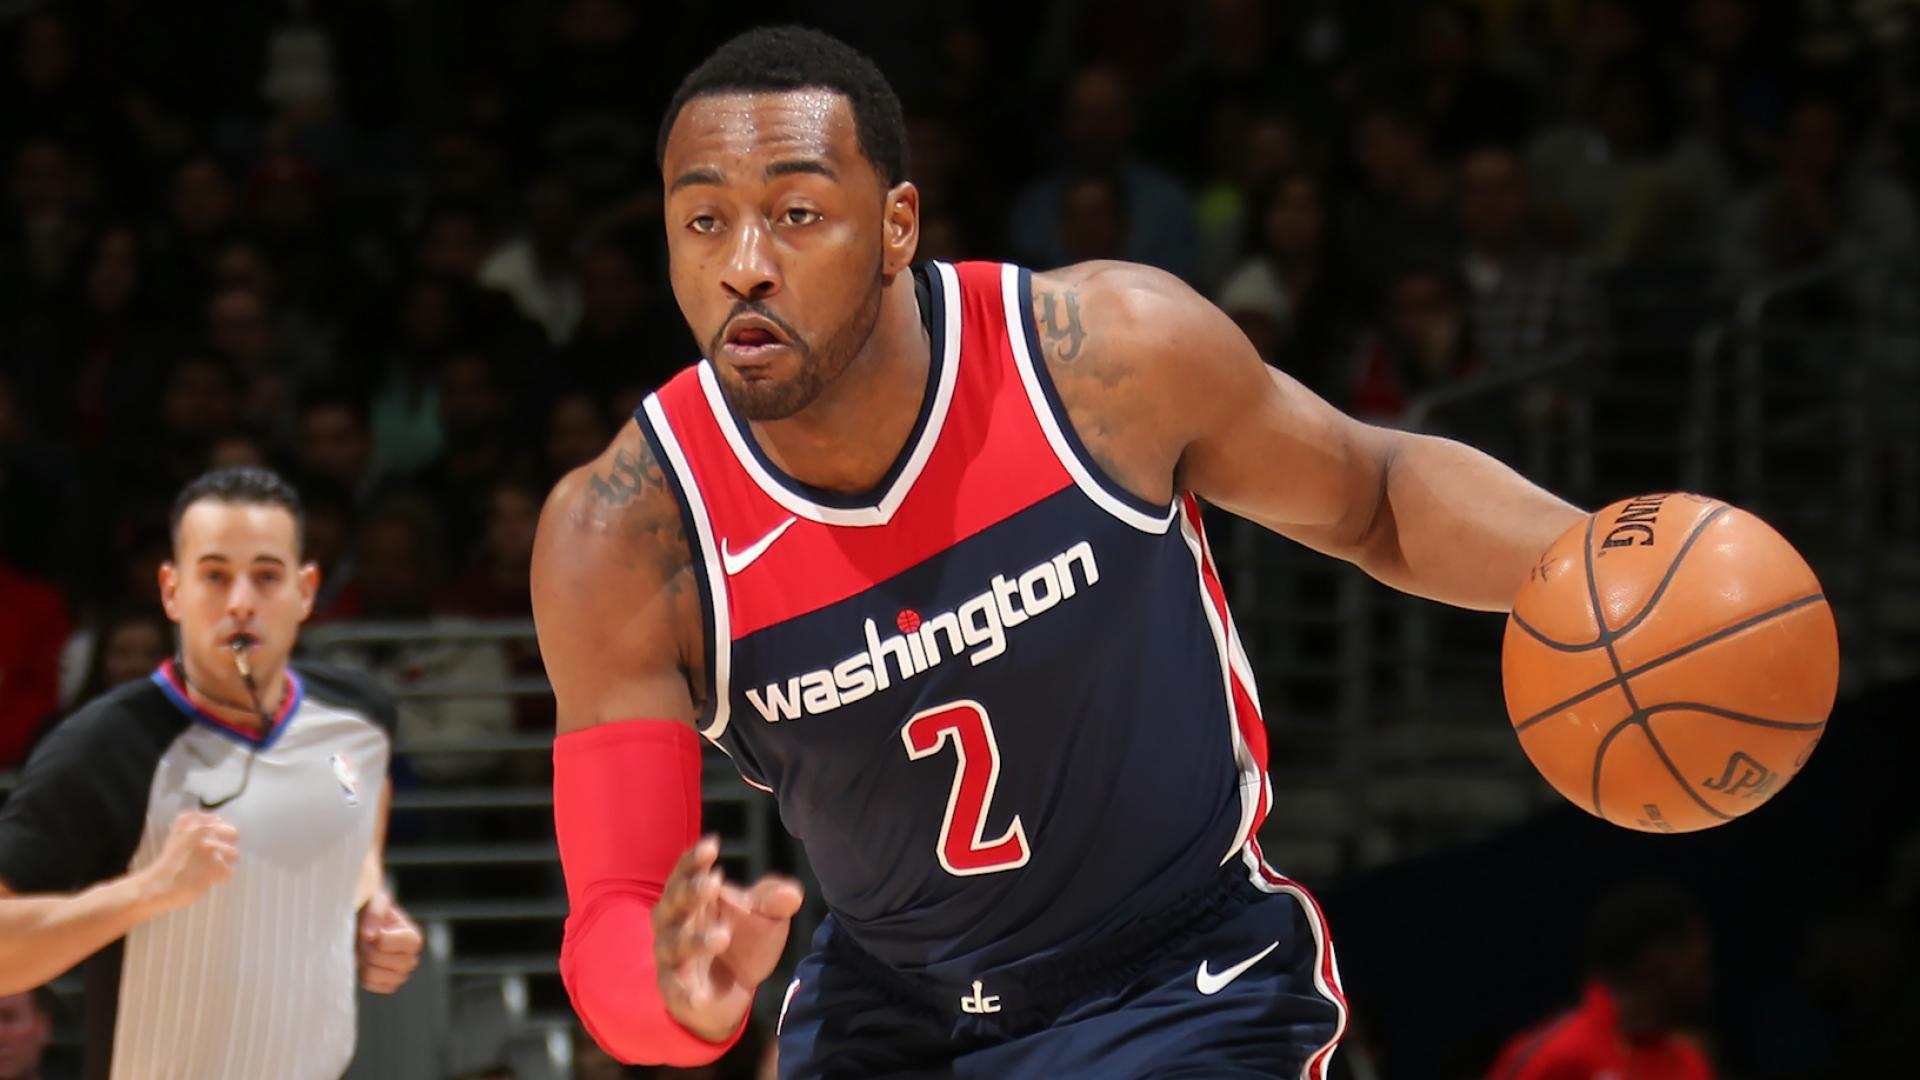 Washington Wizards PG John Wall To Miss 6 Weeks Following Knee Surgery